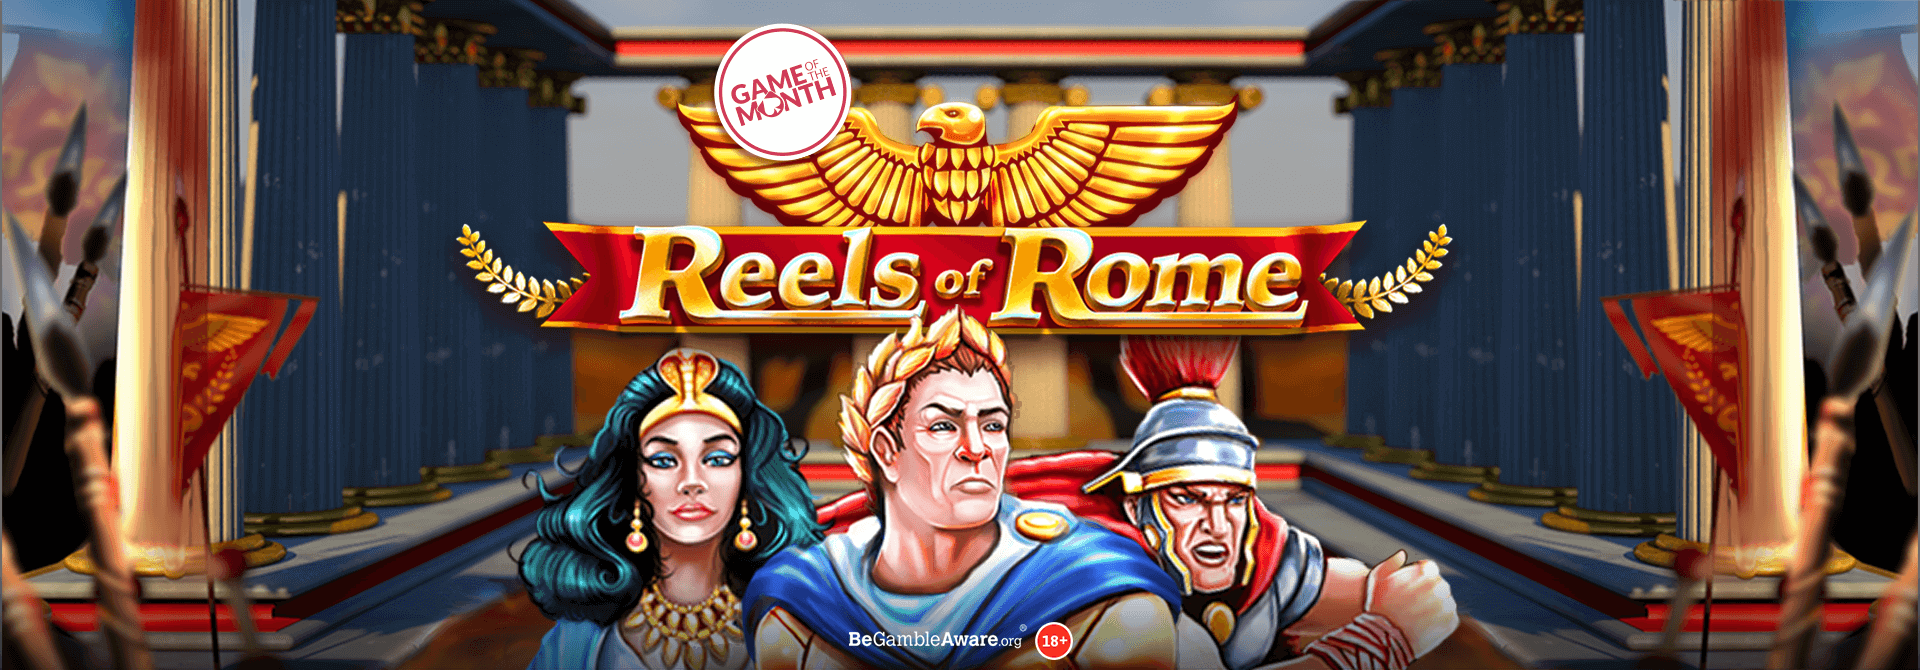 Will you be the Emperor or Empress of the Reels of Rome online slots?